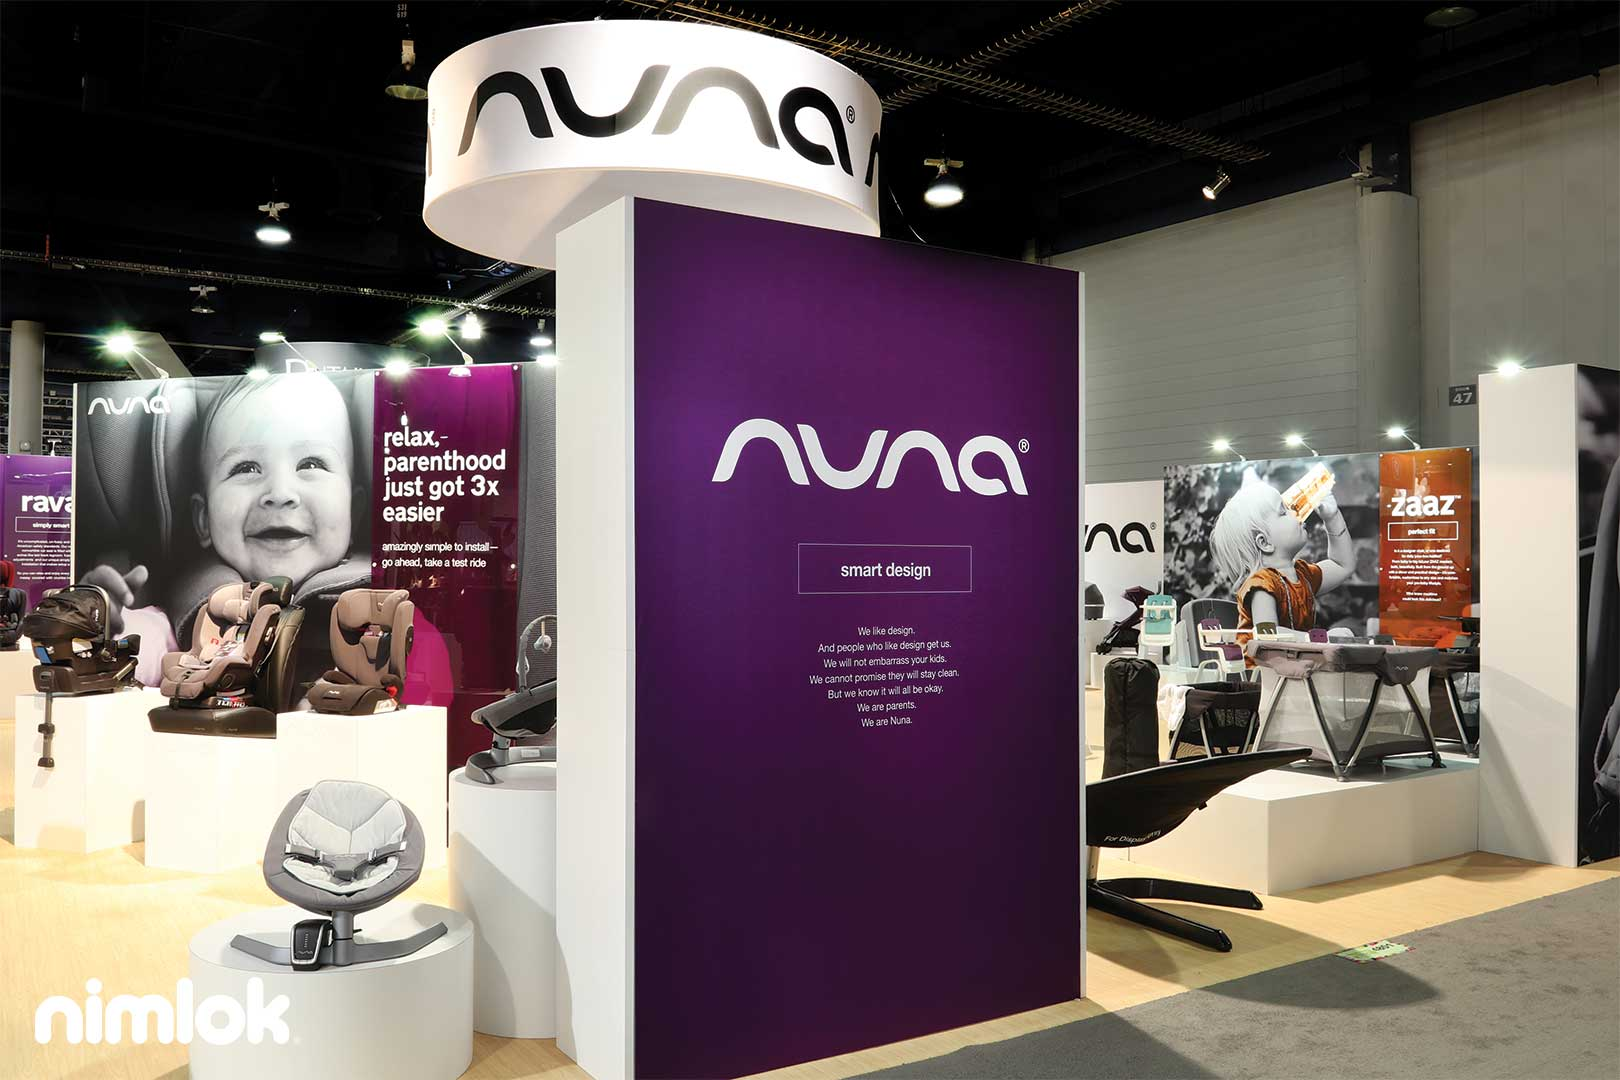 Exhibition Booth Graphics : Trade show booth design guide tips ideas for custom exhibits